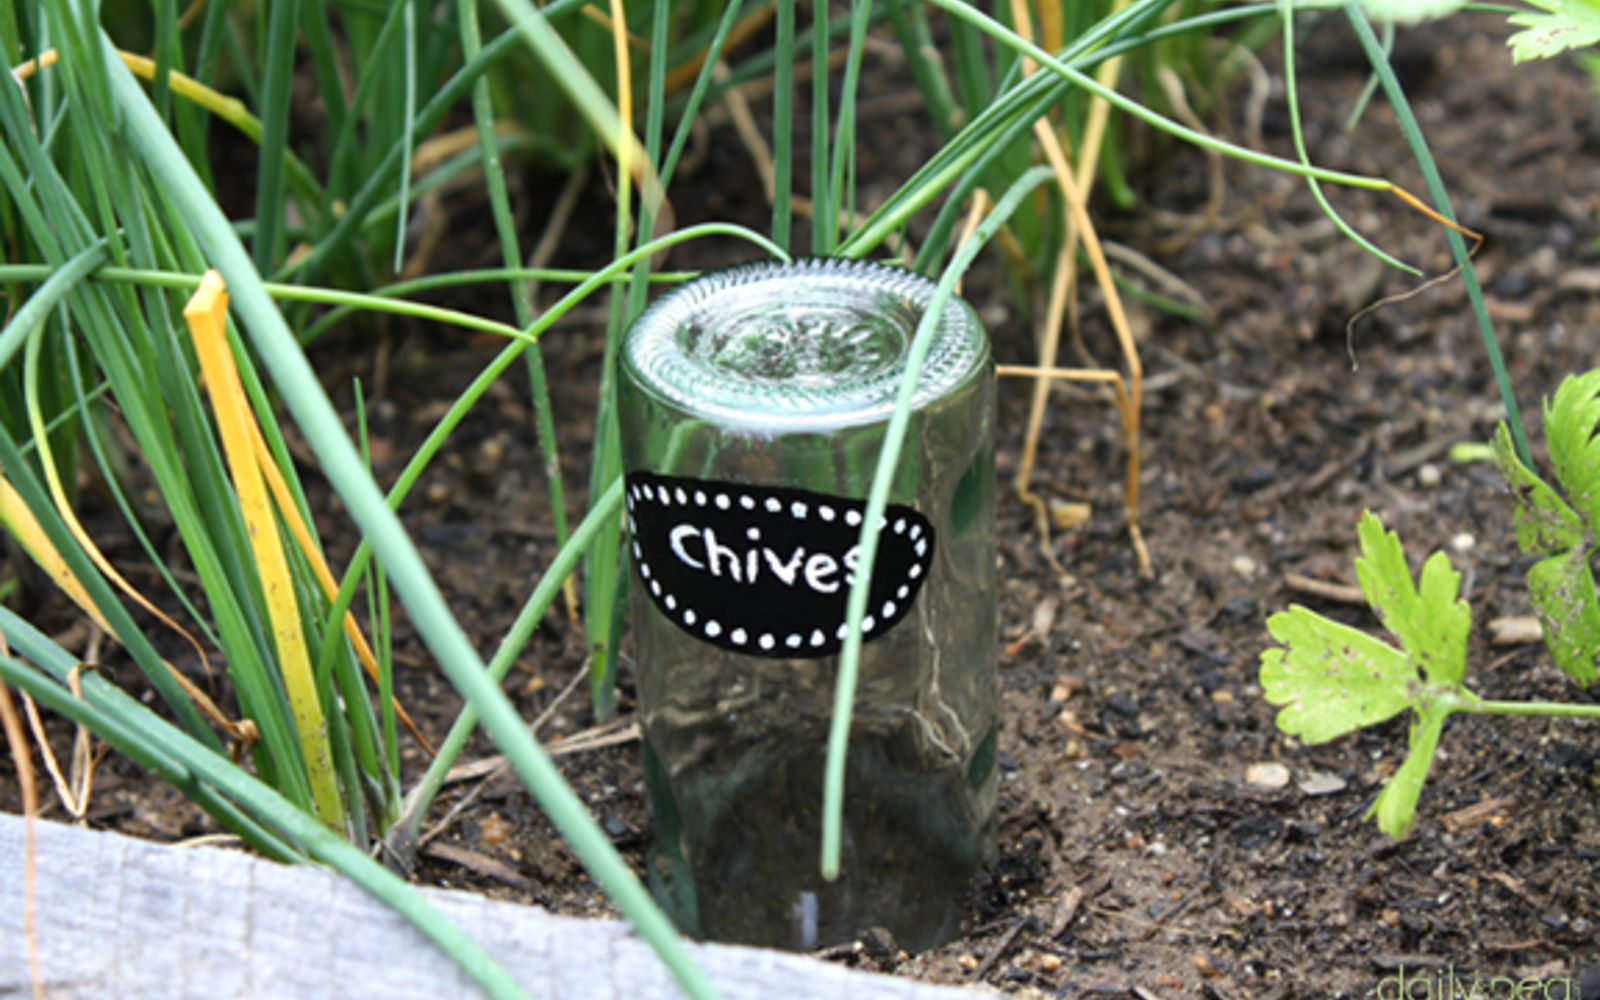 s 15 lovely repurposed items perfect for your garden, Transition Bottles Into Garden Markers